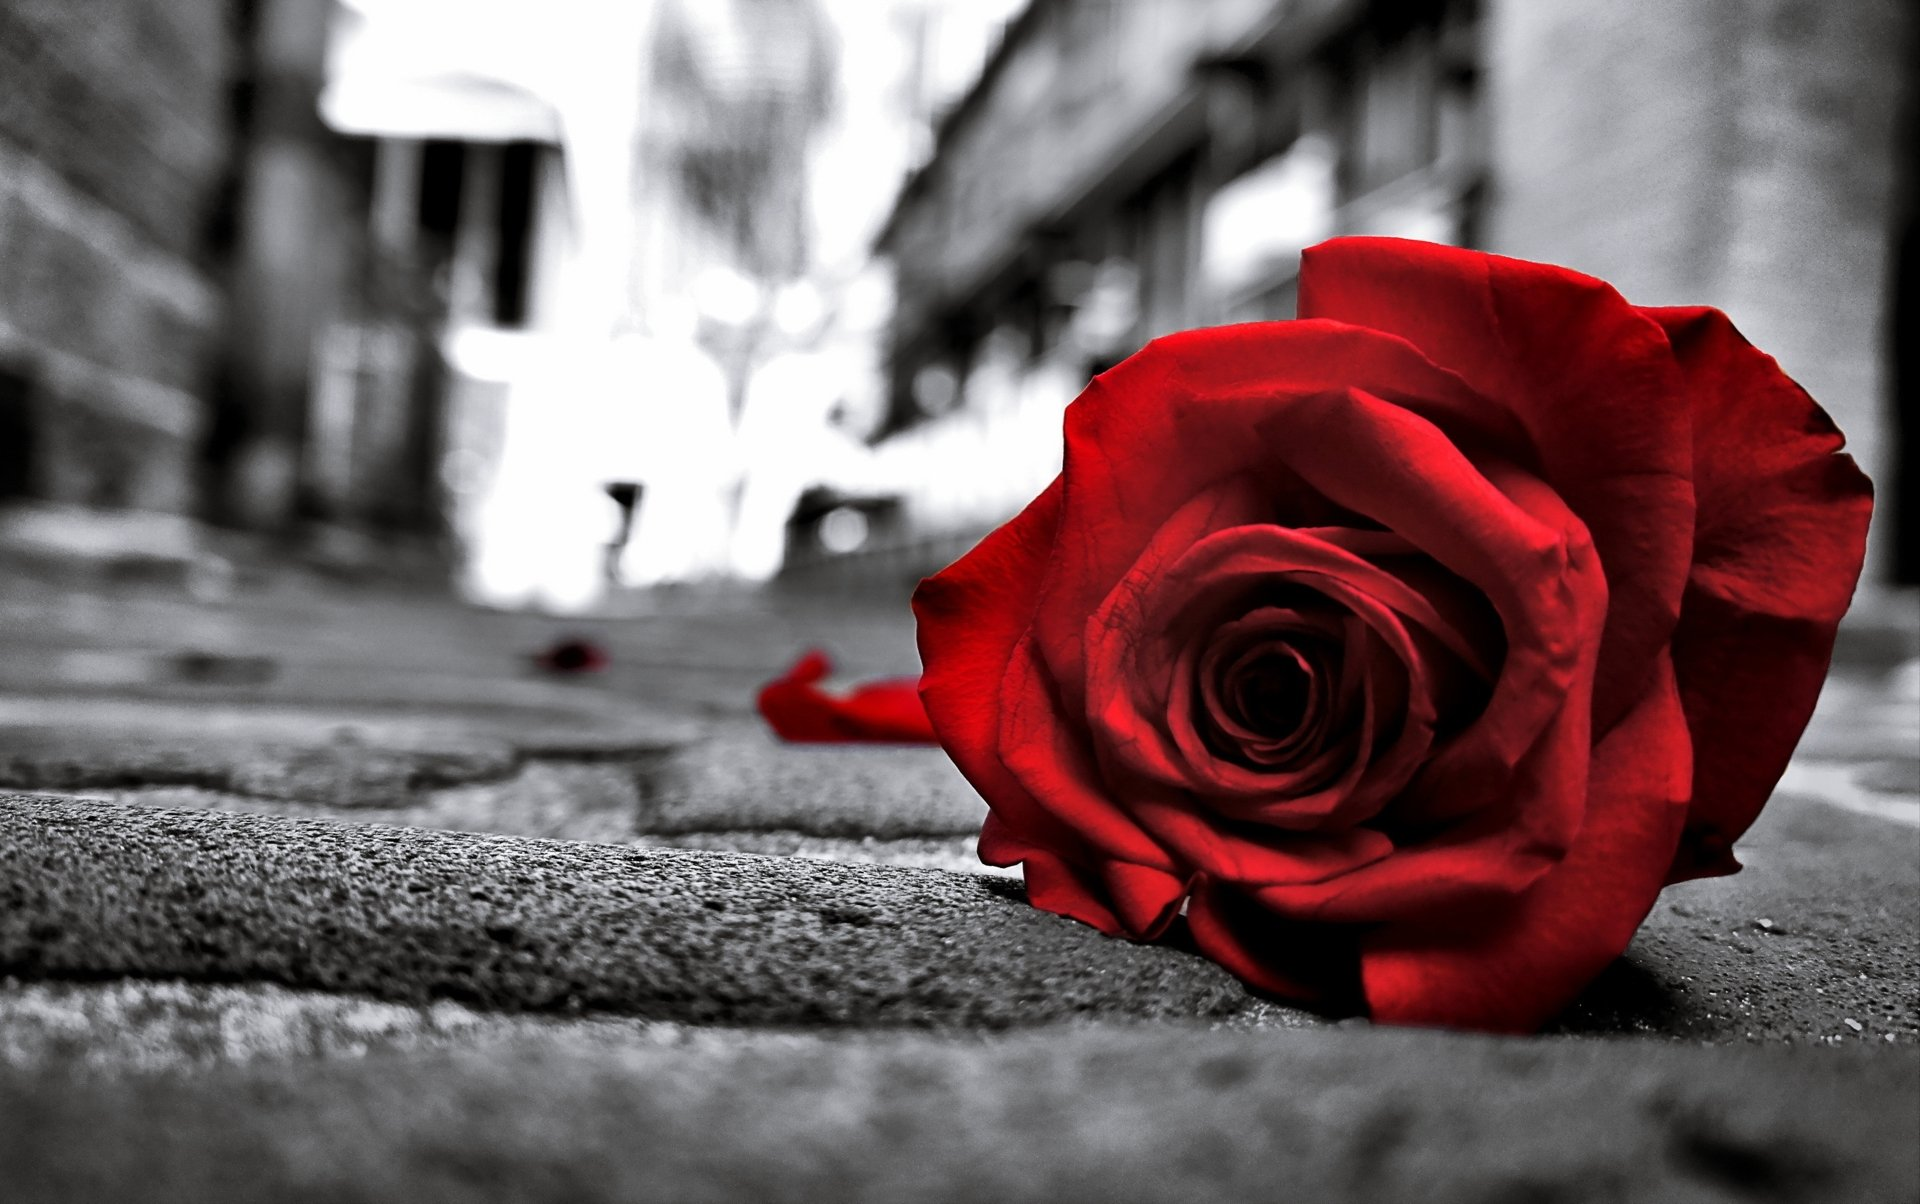 Sad rose 4k ultra hd wallpaper and background image - Sad man hd wallpaper ...